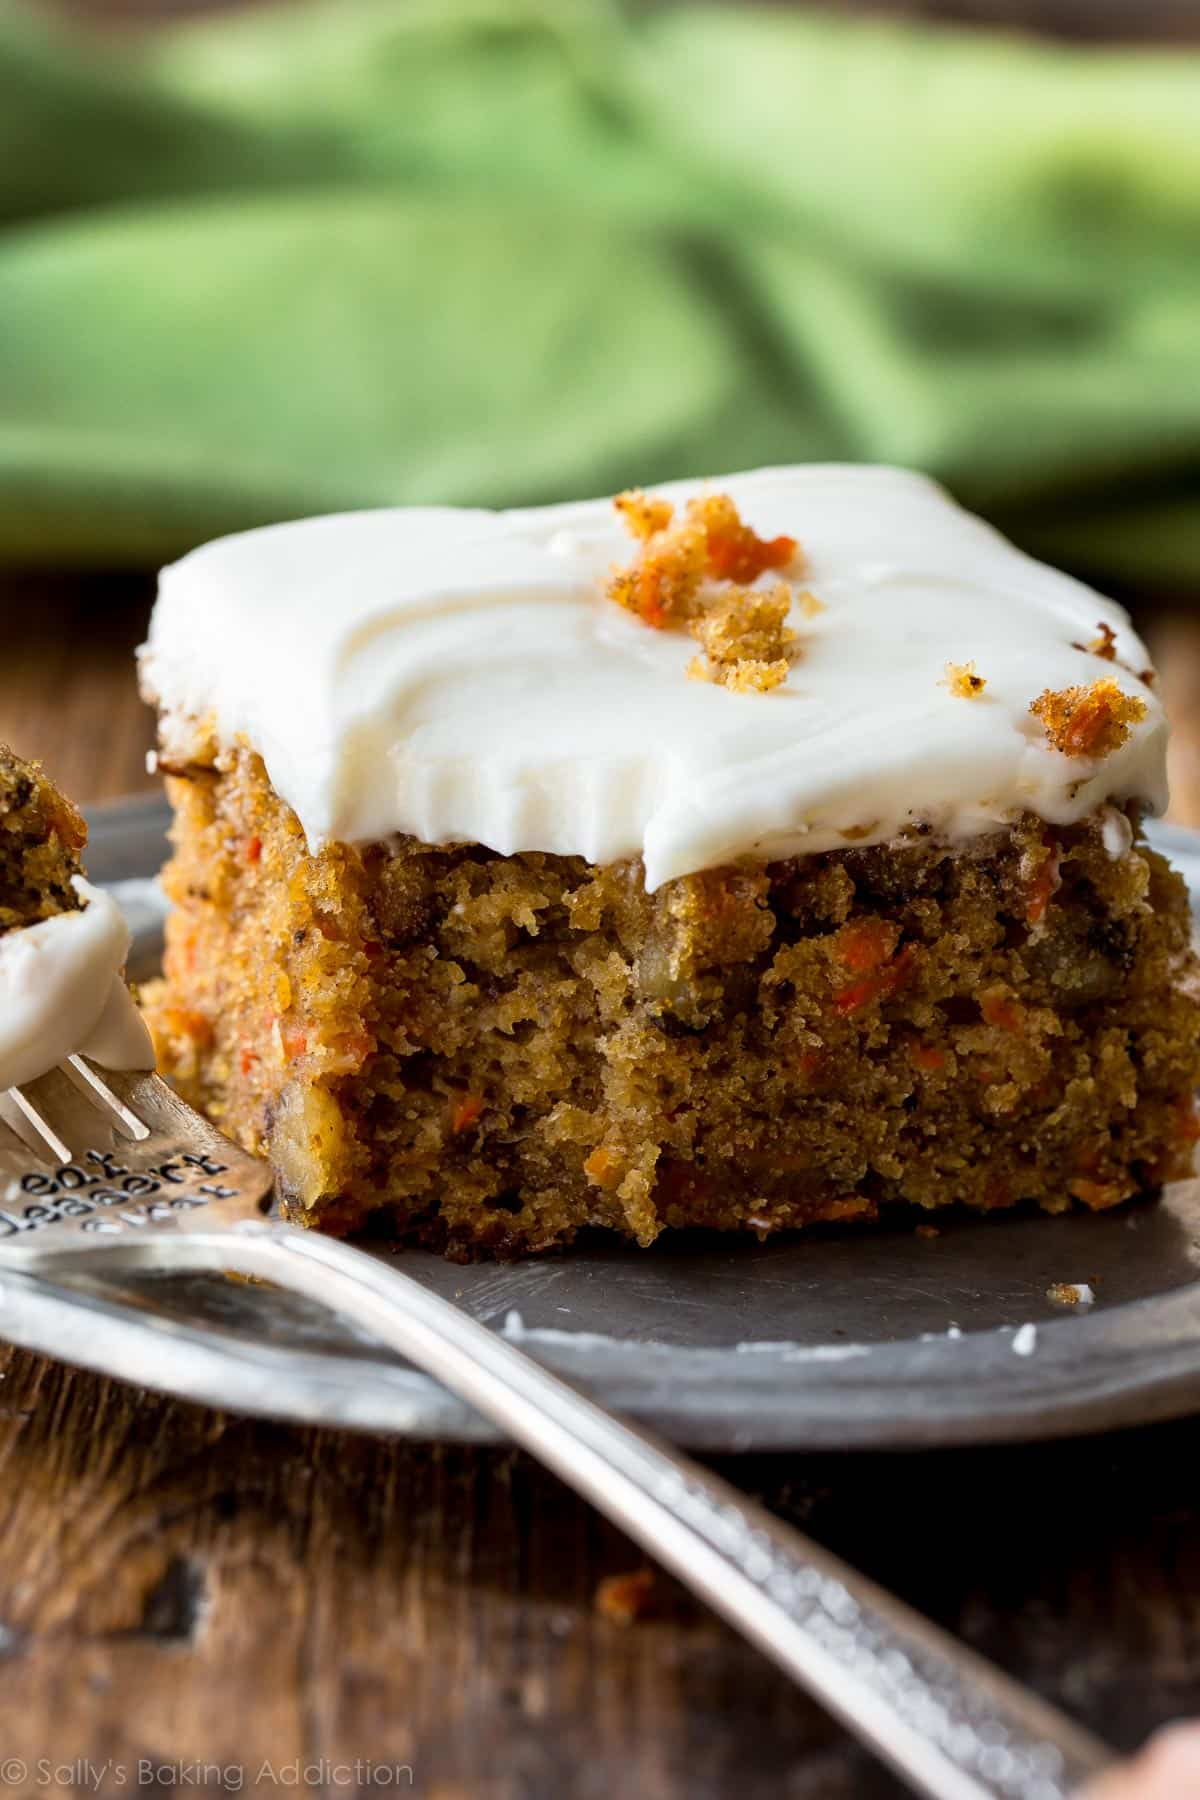 The Best Carrot Cake Recipe Is This Pineapple With Cream Cheese Frosting Moist